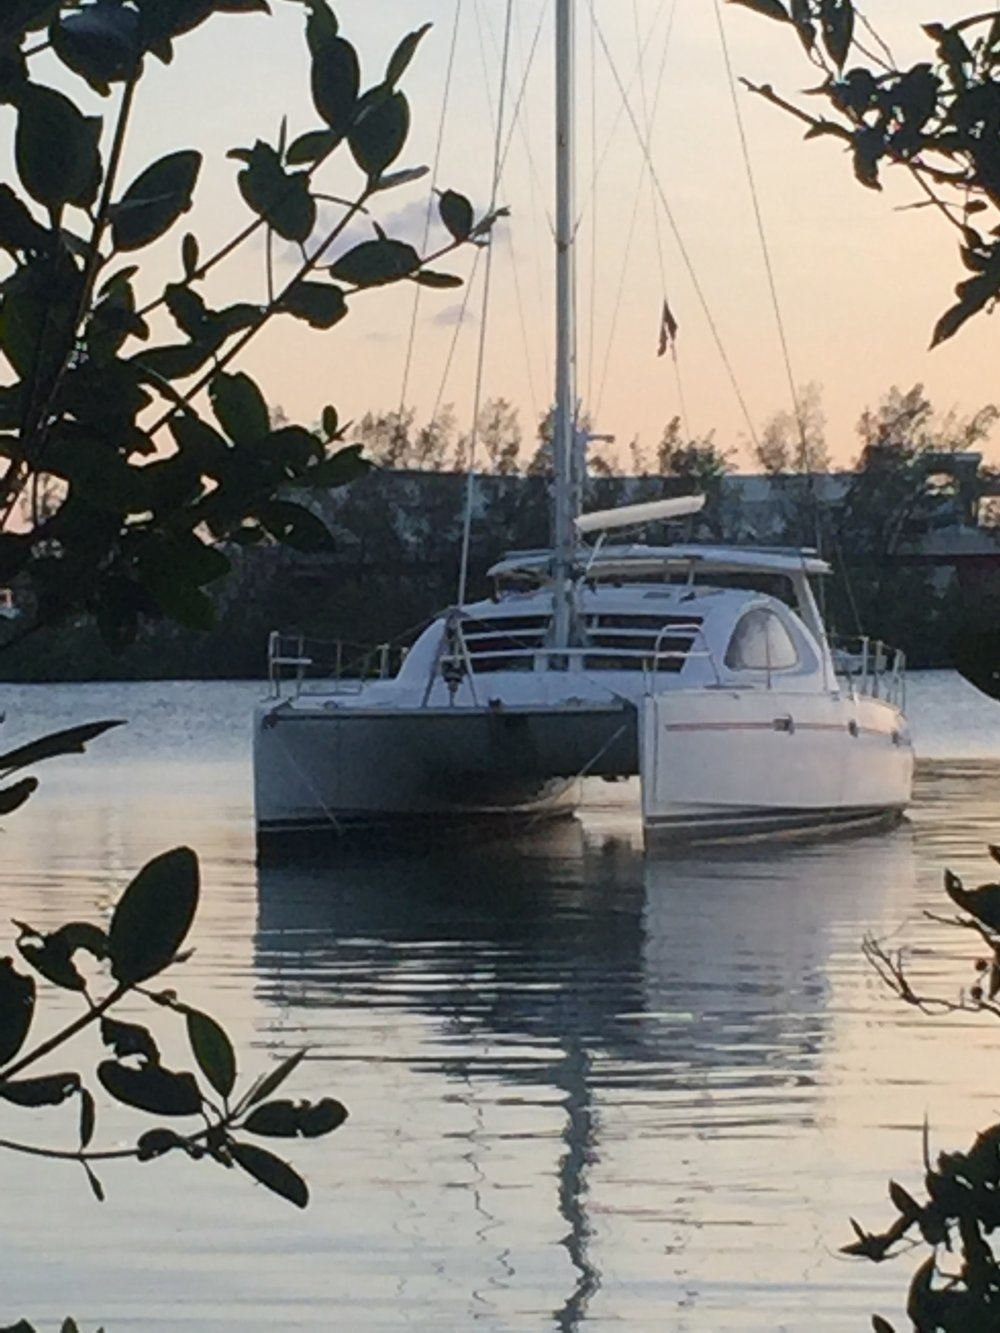 Pao took this shot of Mystique two days after Irma swept through Miami. Her father's 23' sloop disappeared in the storm and no one has seen a trace of her since.  She was anchored maybe a 100 yards away from Mystique in the middle of the anchorage.